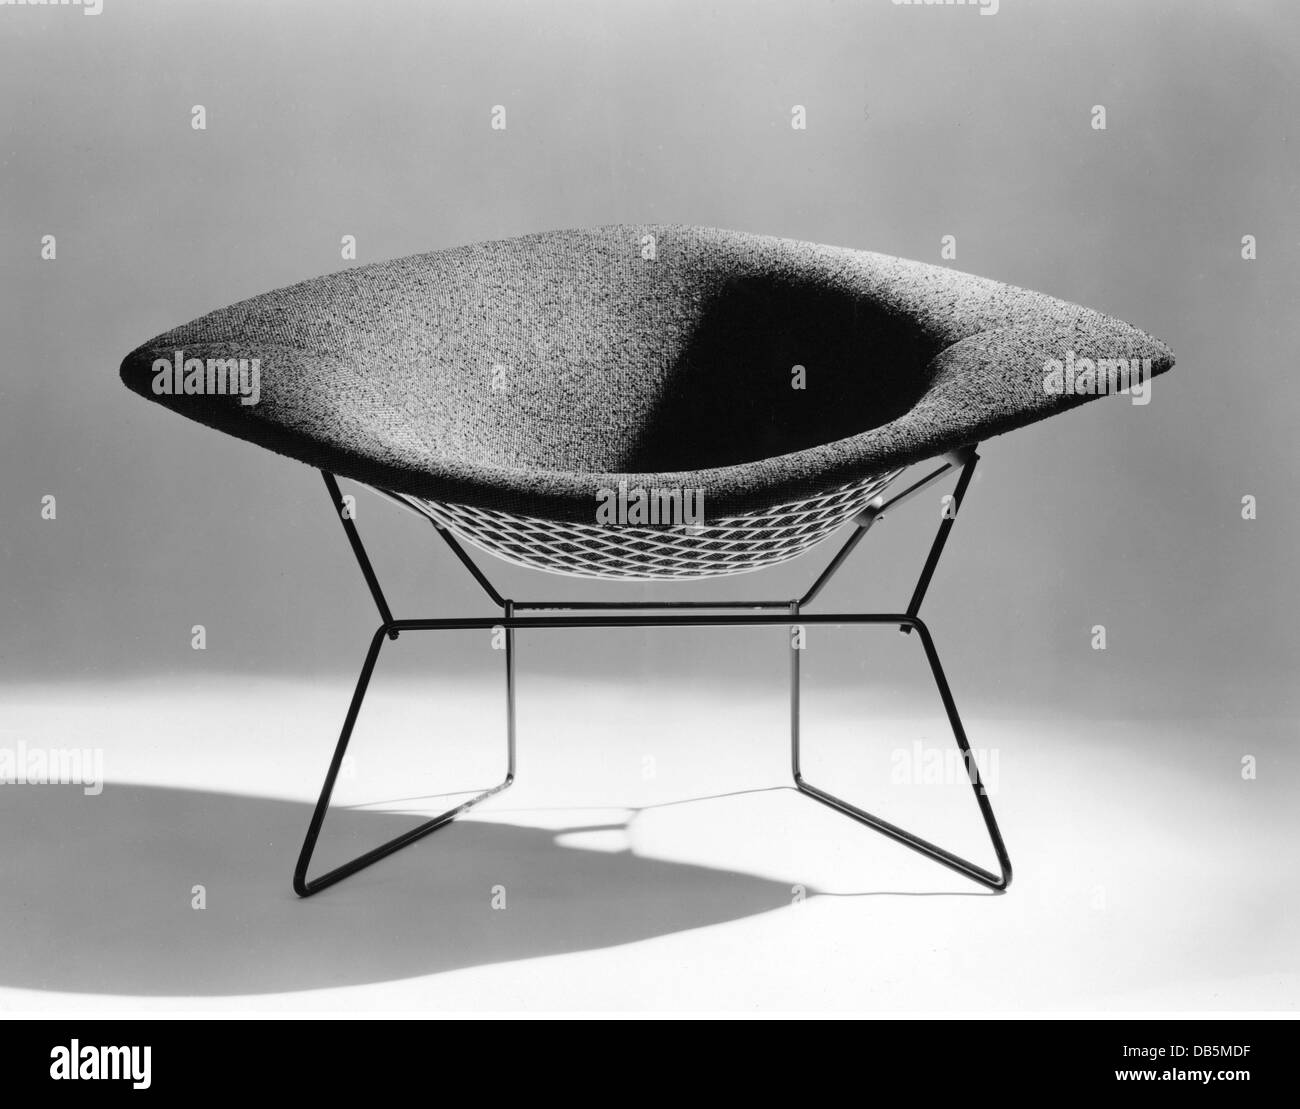 Knoll International Sessel Möbel Möbel Sessel Design Von Harry Bertoia Verteilung Von